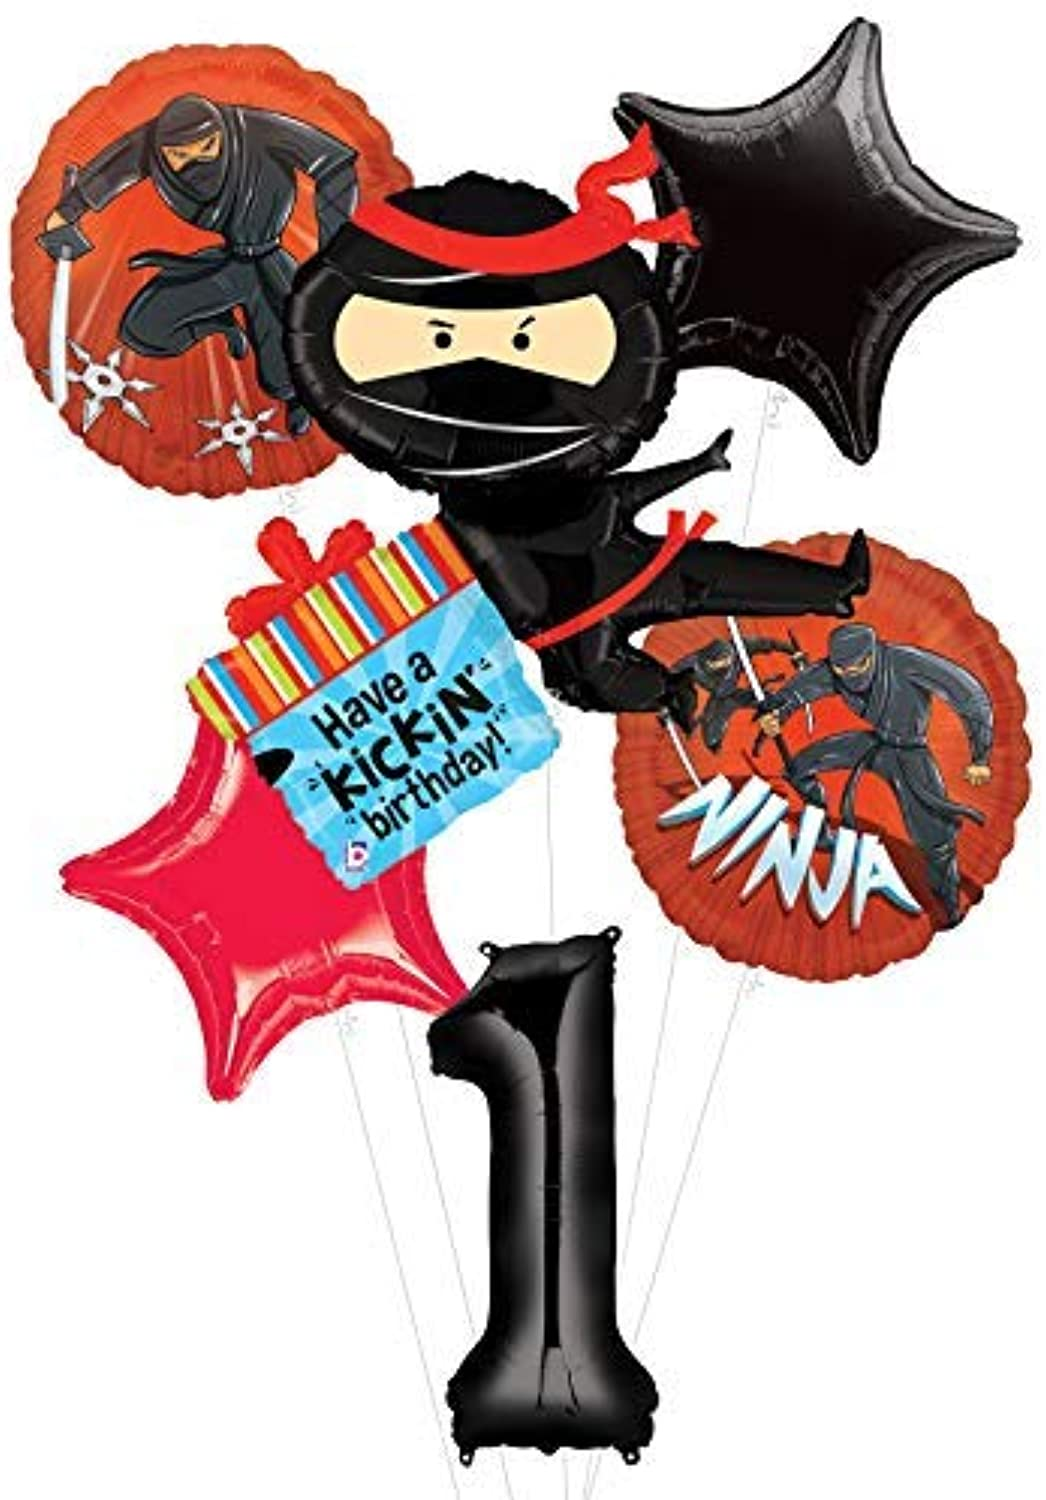 Mayflower Products Ninja Birthday Party Supplies Have A Happy Kicking 1st Birthday Balloon Bouquet Decorations